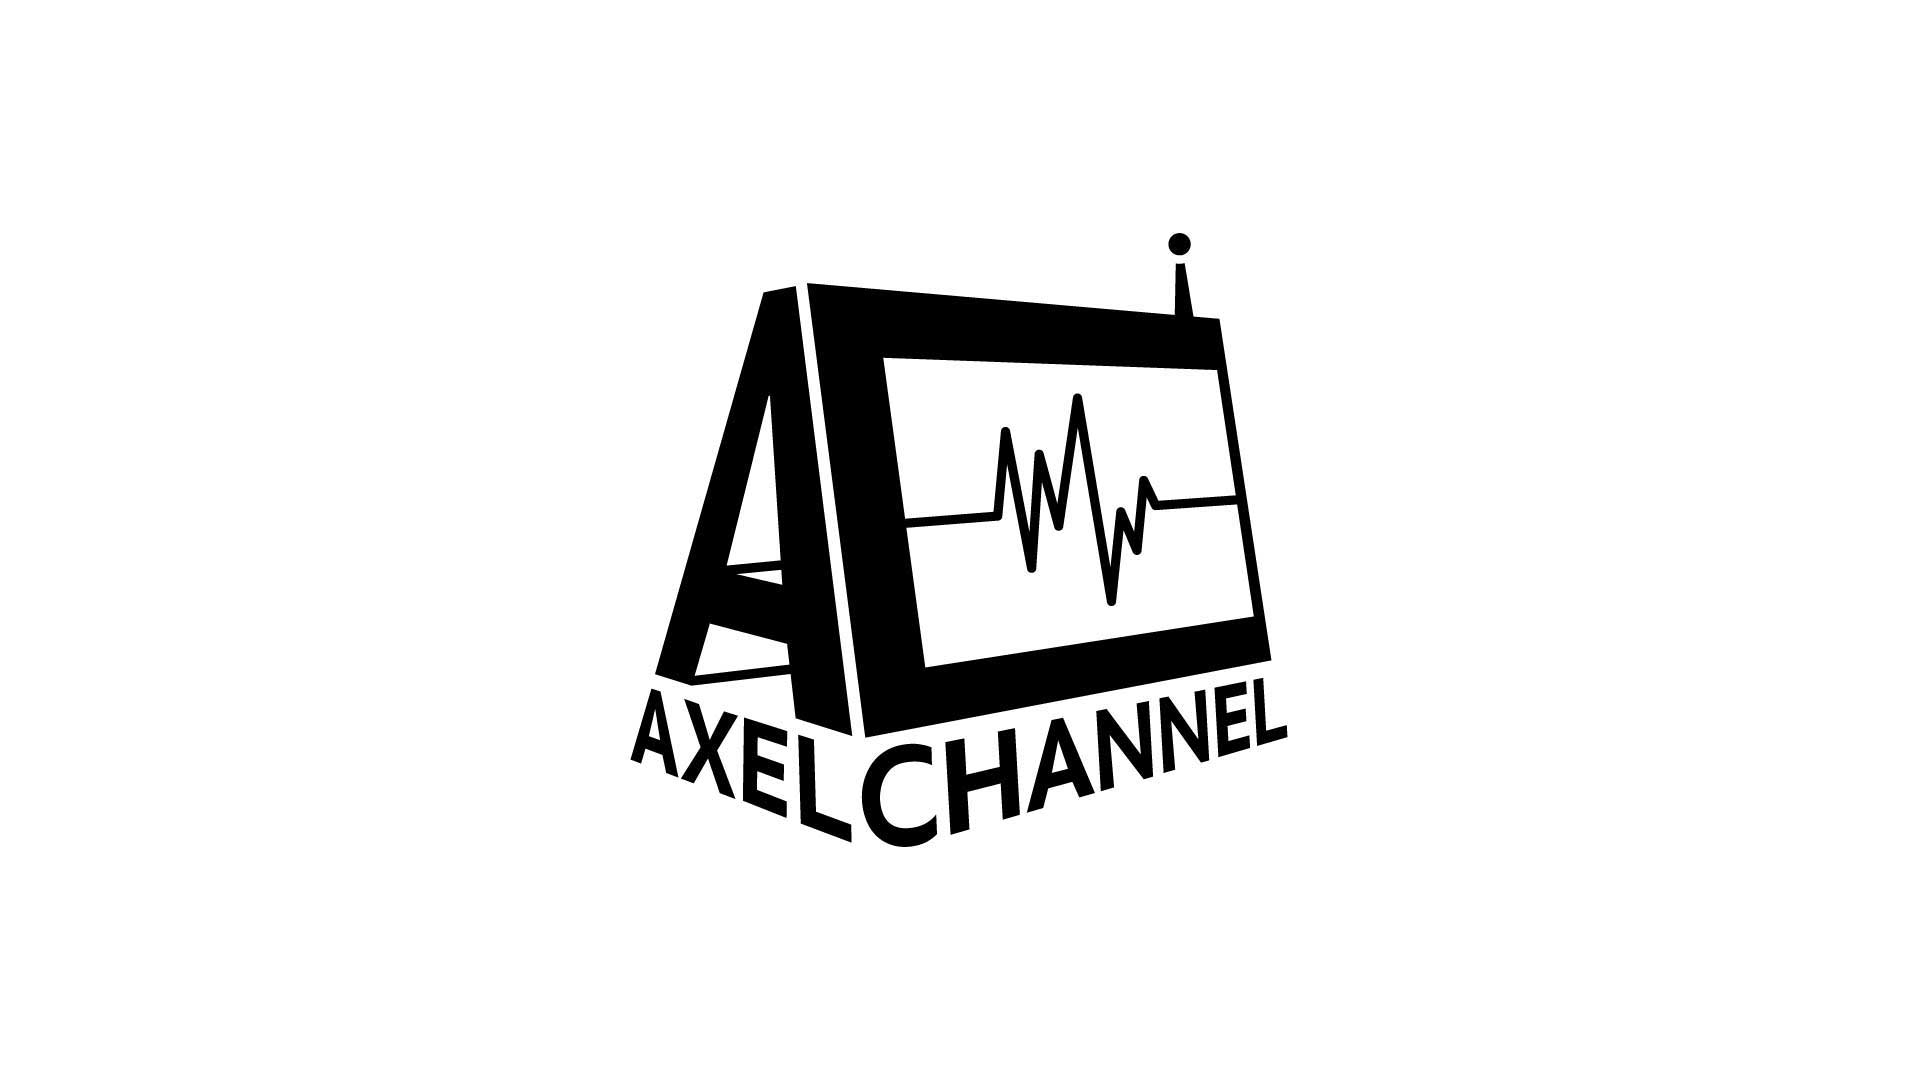 AXEL CHANNEL